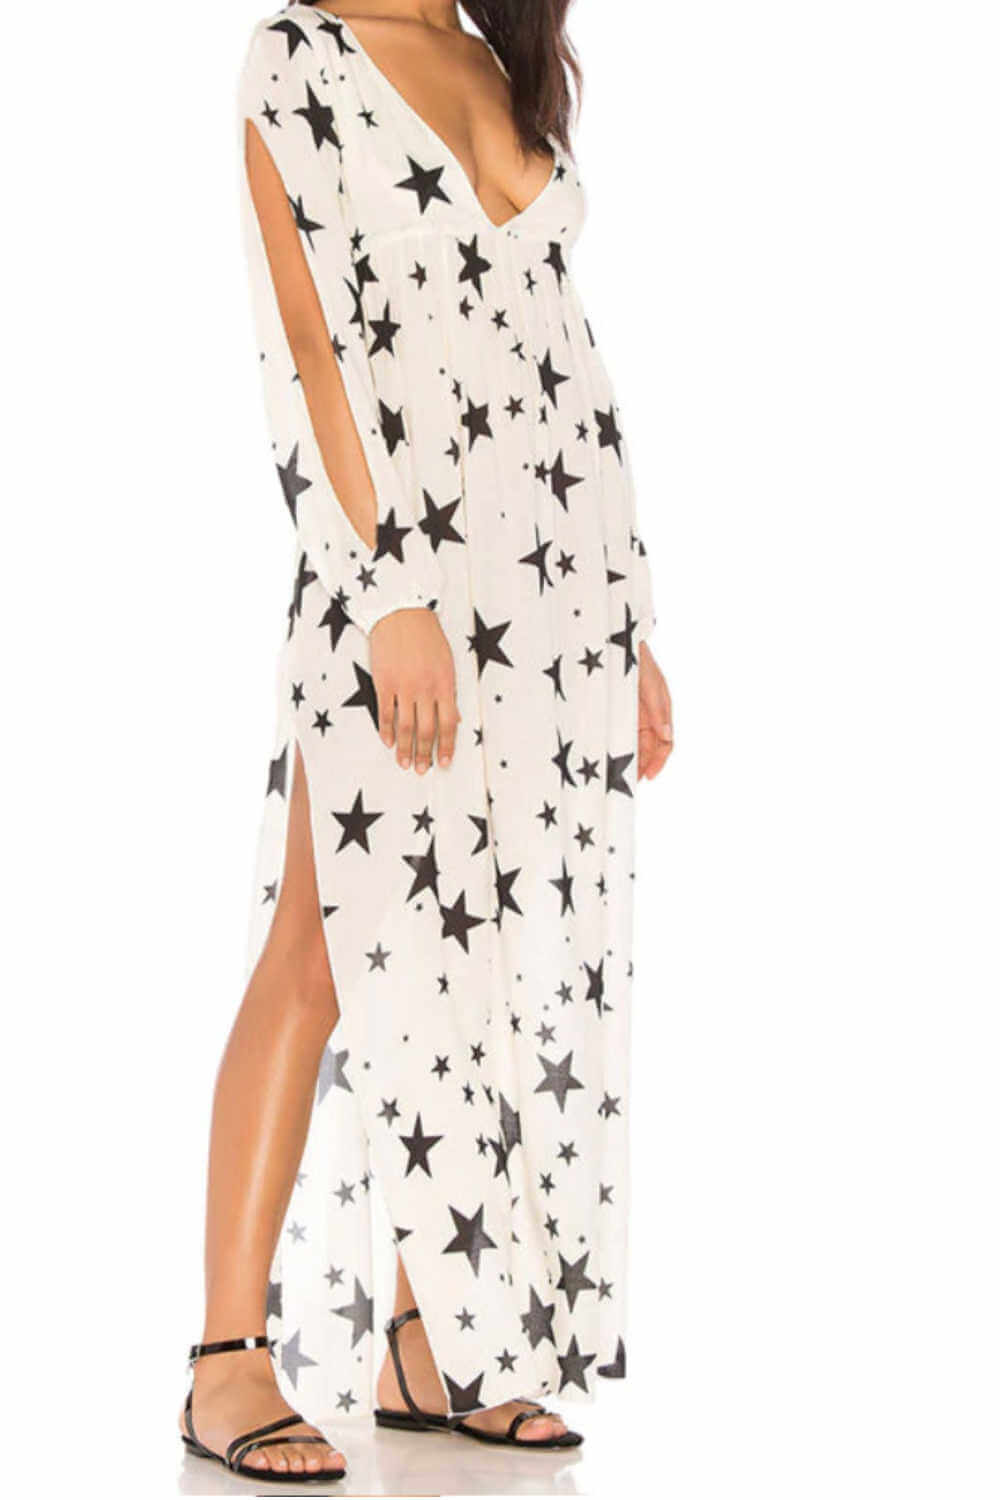 maxi-dress-beach-cover-white-black-stars